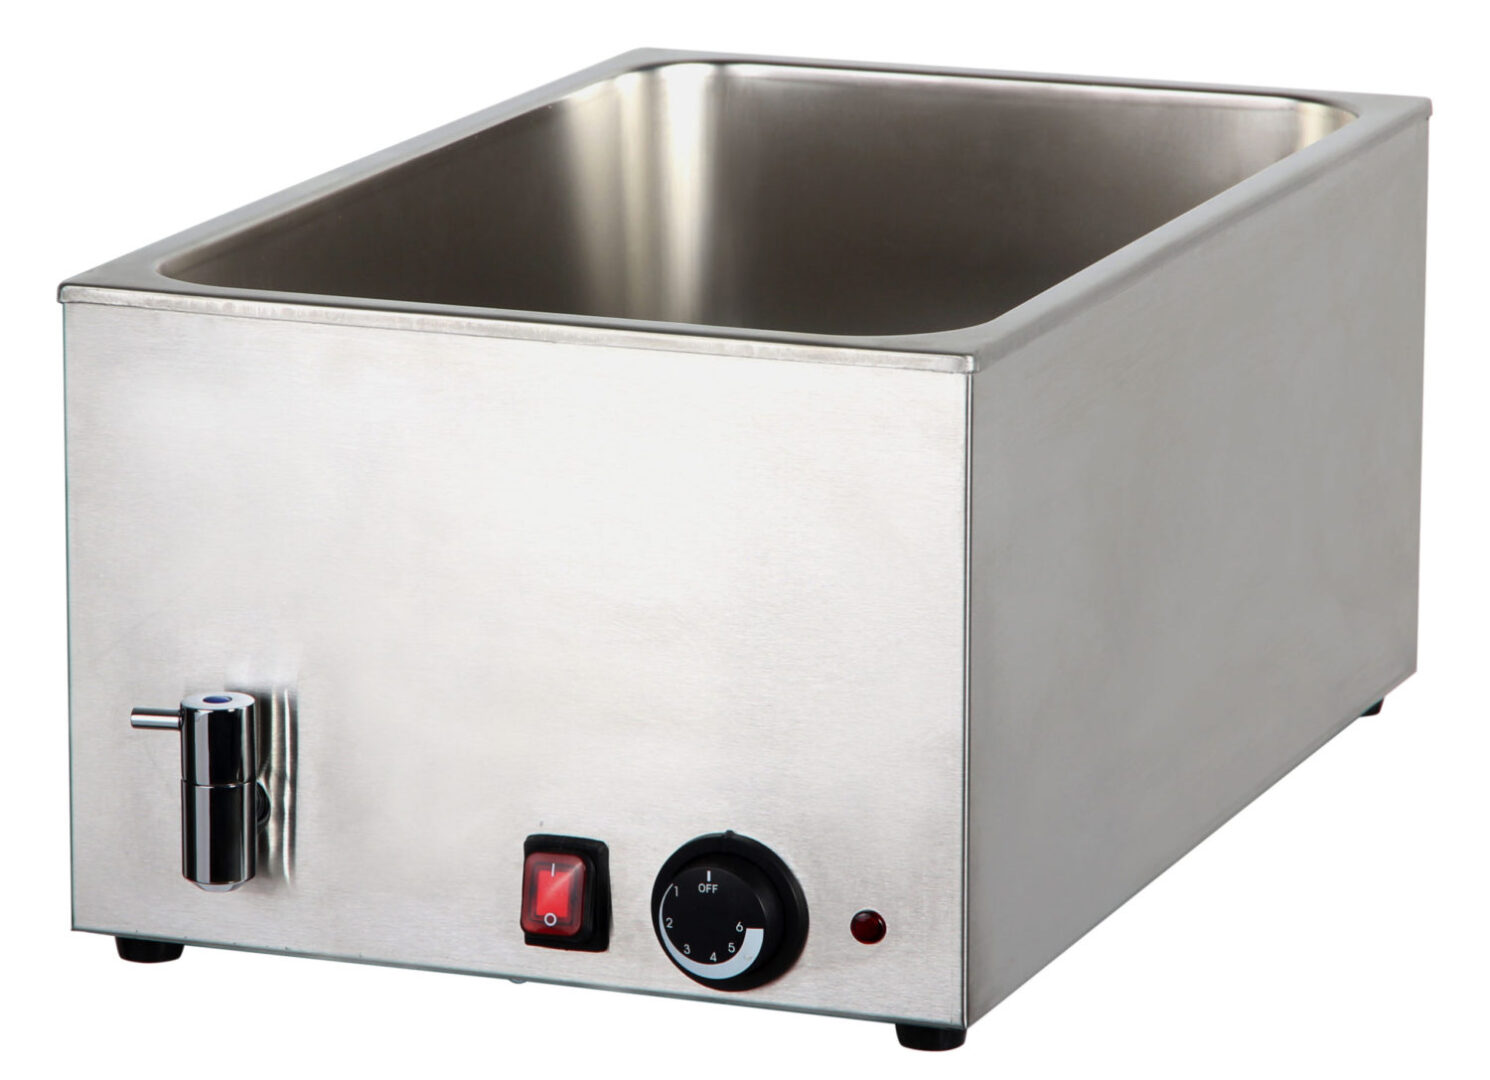 Cookrite 8710 Bain Marie with Mechanical Controller and Drain 580x340x245